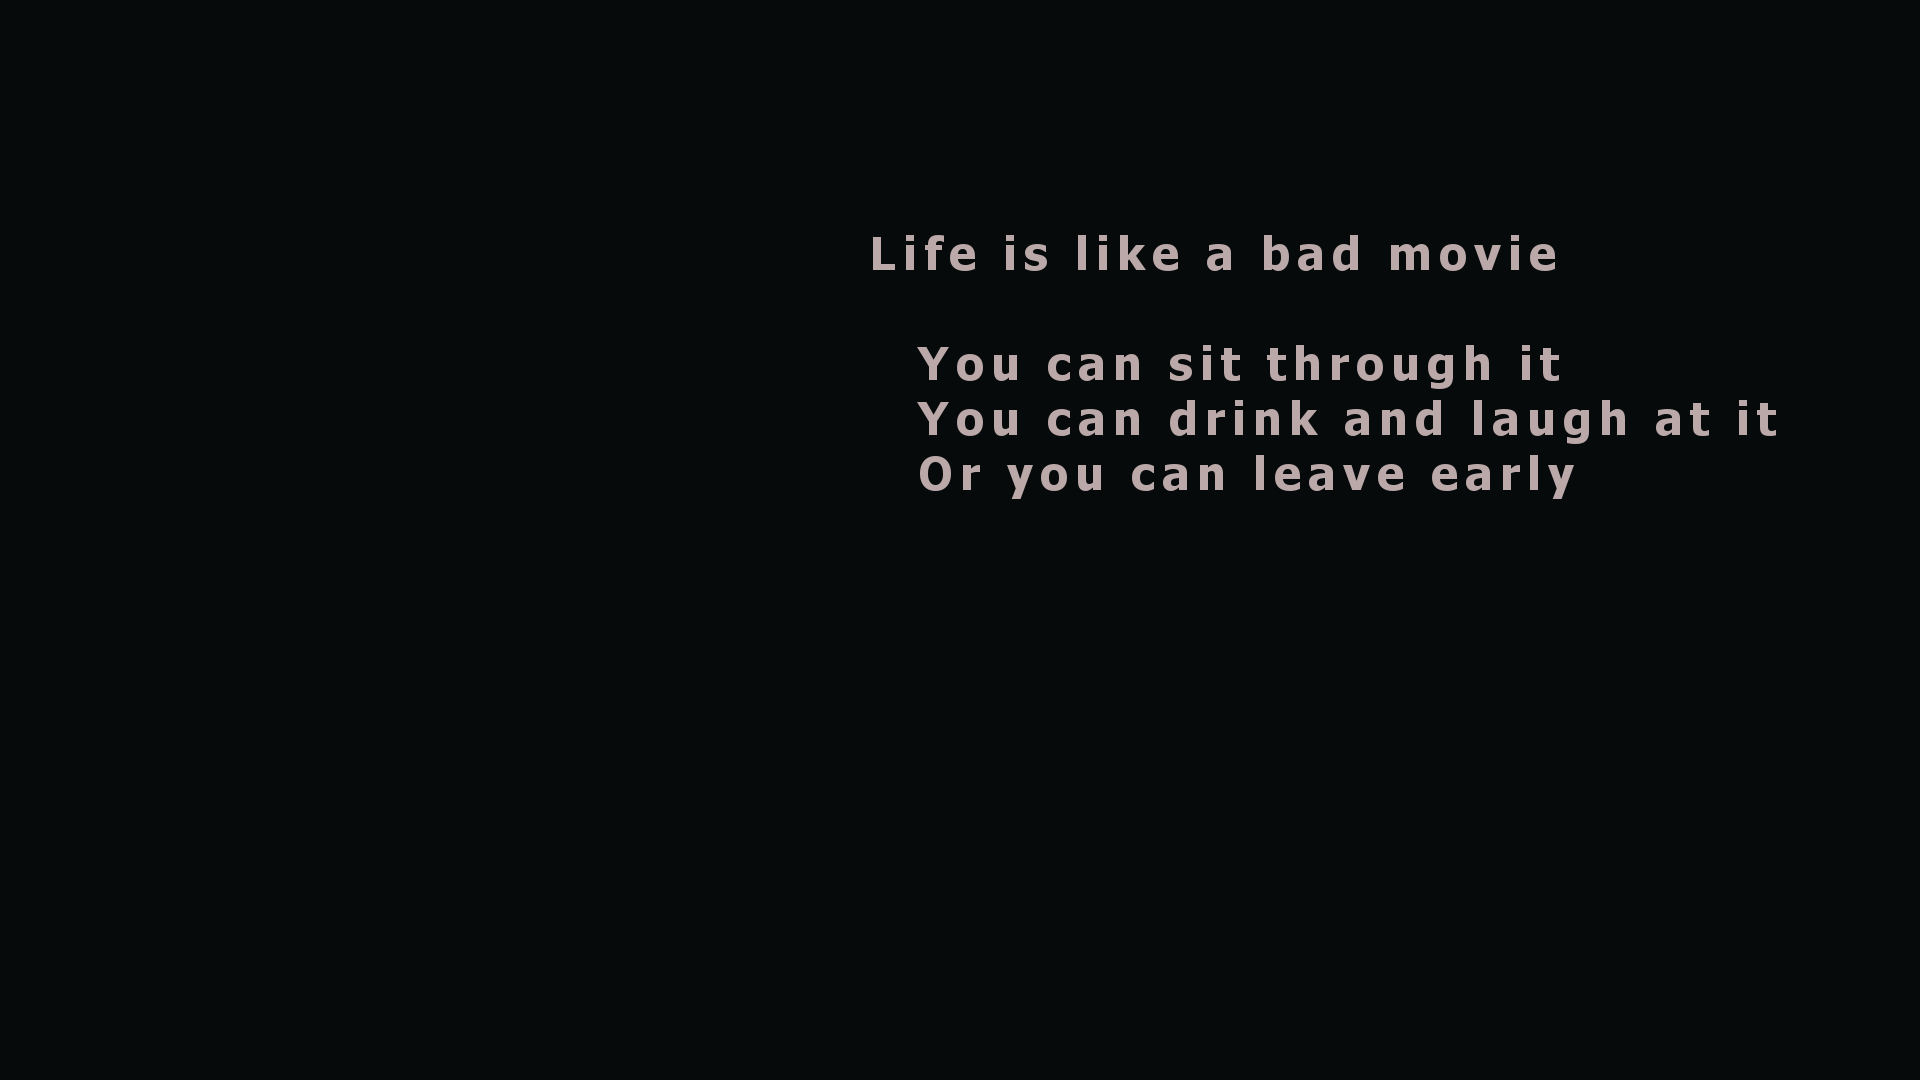 Life Quote Wallpaper